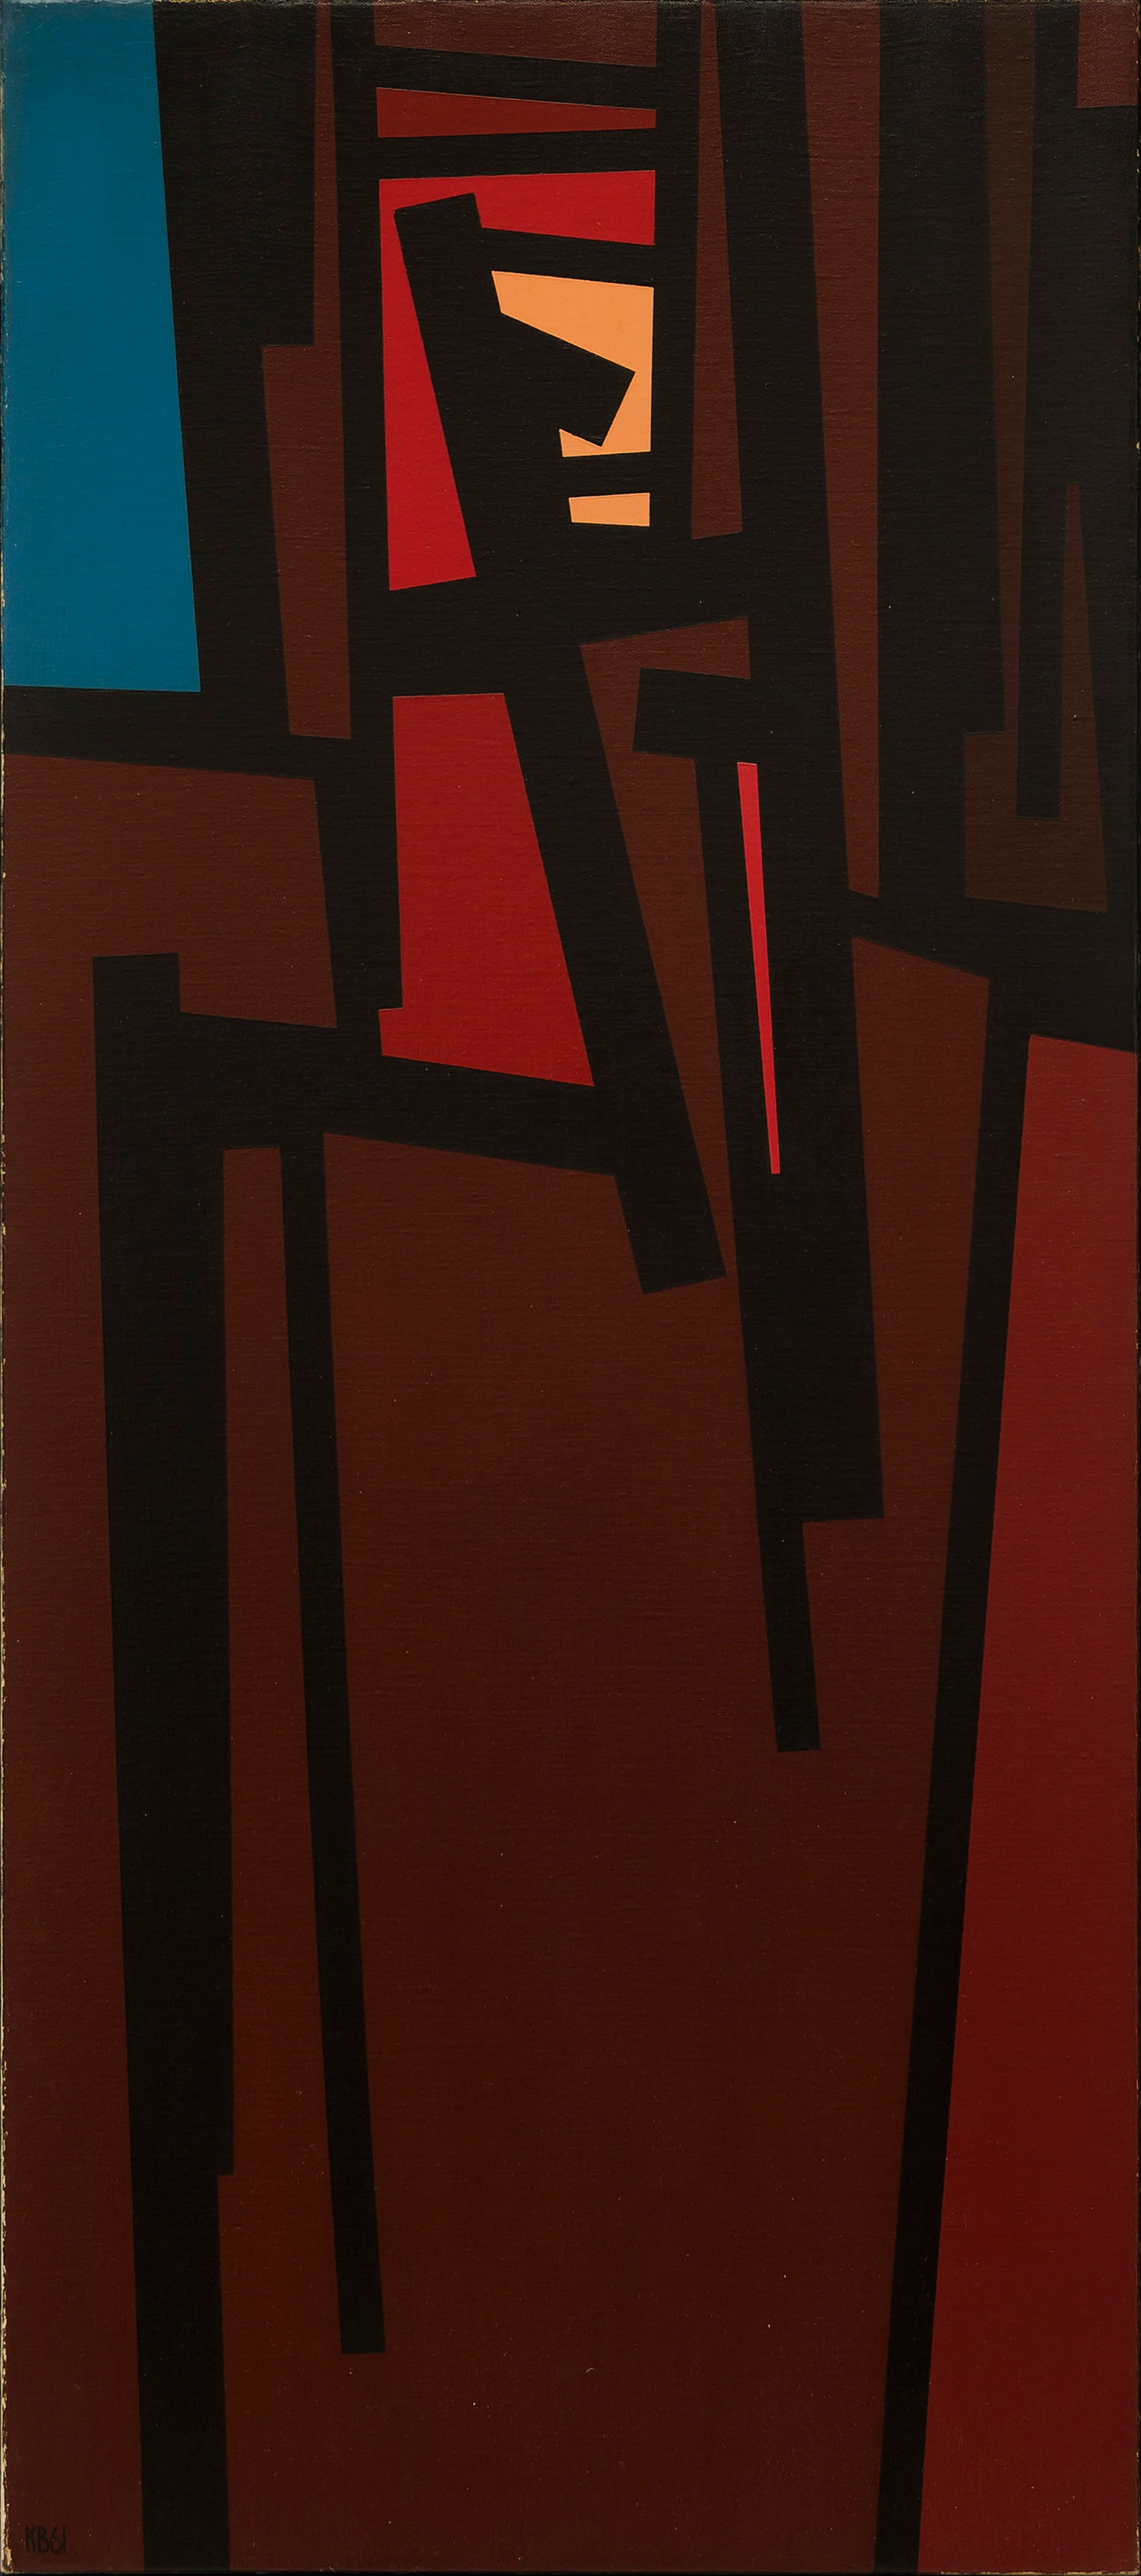 TG #10 , 1961  oil on canvas 46 x 20 inches; 116.8 x 50.8 centimeters